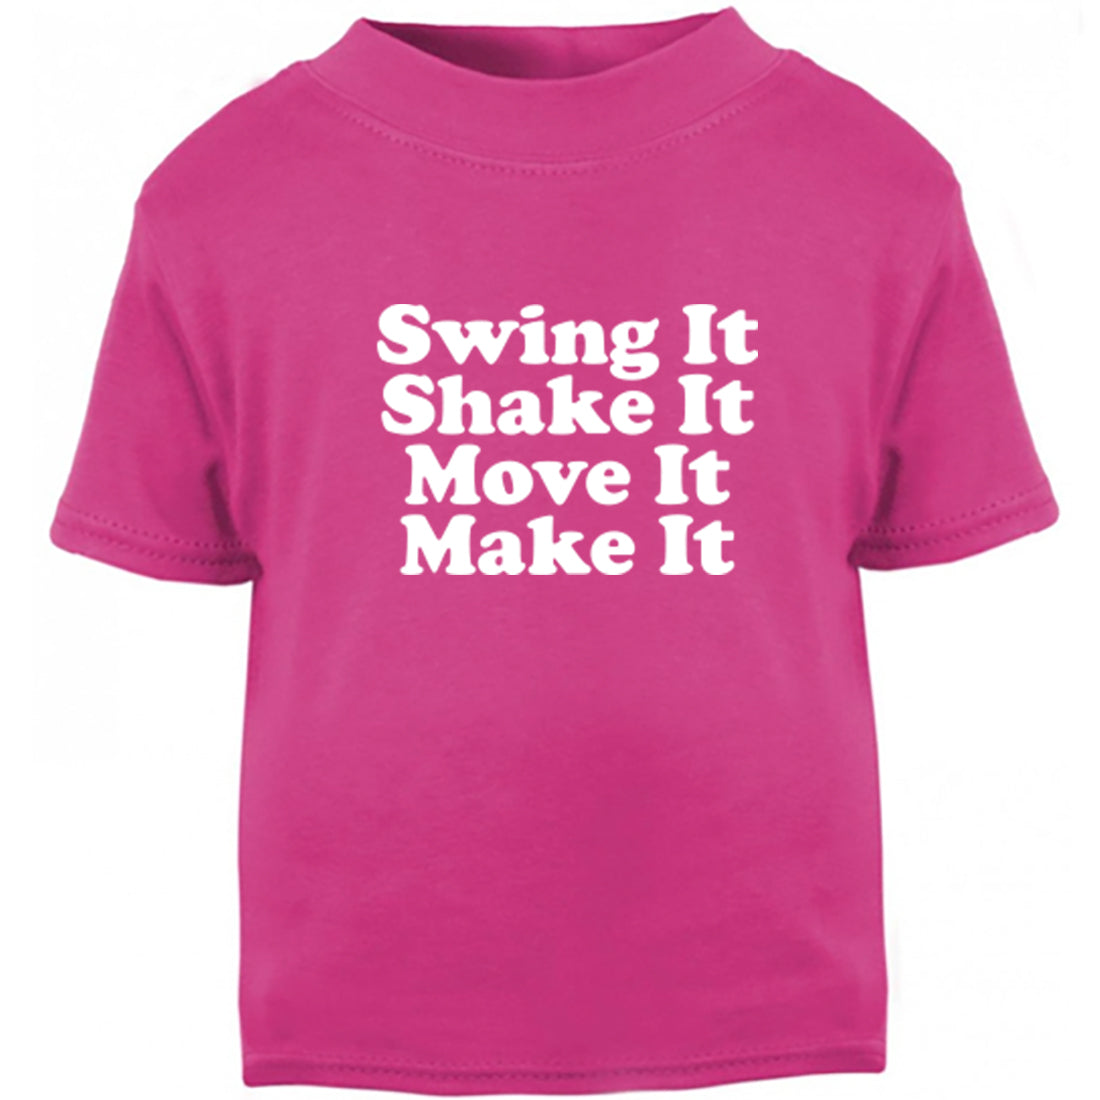 Swing It Shake It Move It Make It-Spice Girls Childrens Ages 3/4-12/14 Unisex Fit T-Shirt K2430 - Illustrated Identity Ltd.